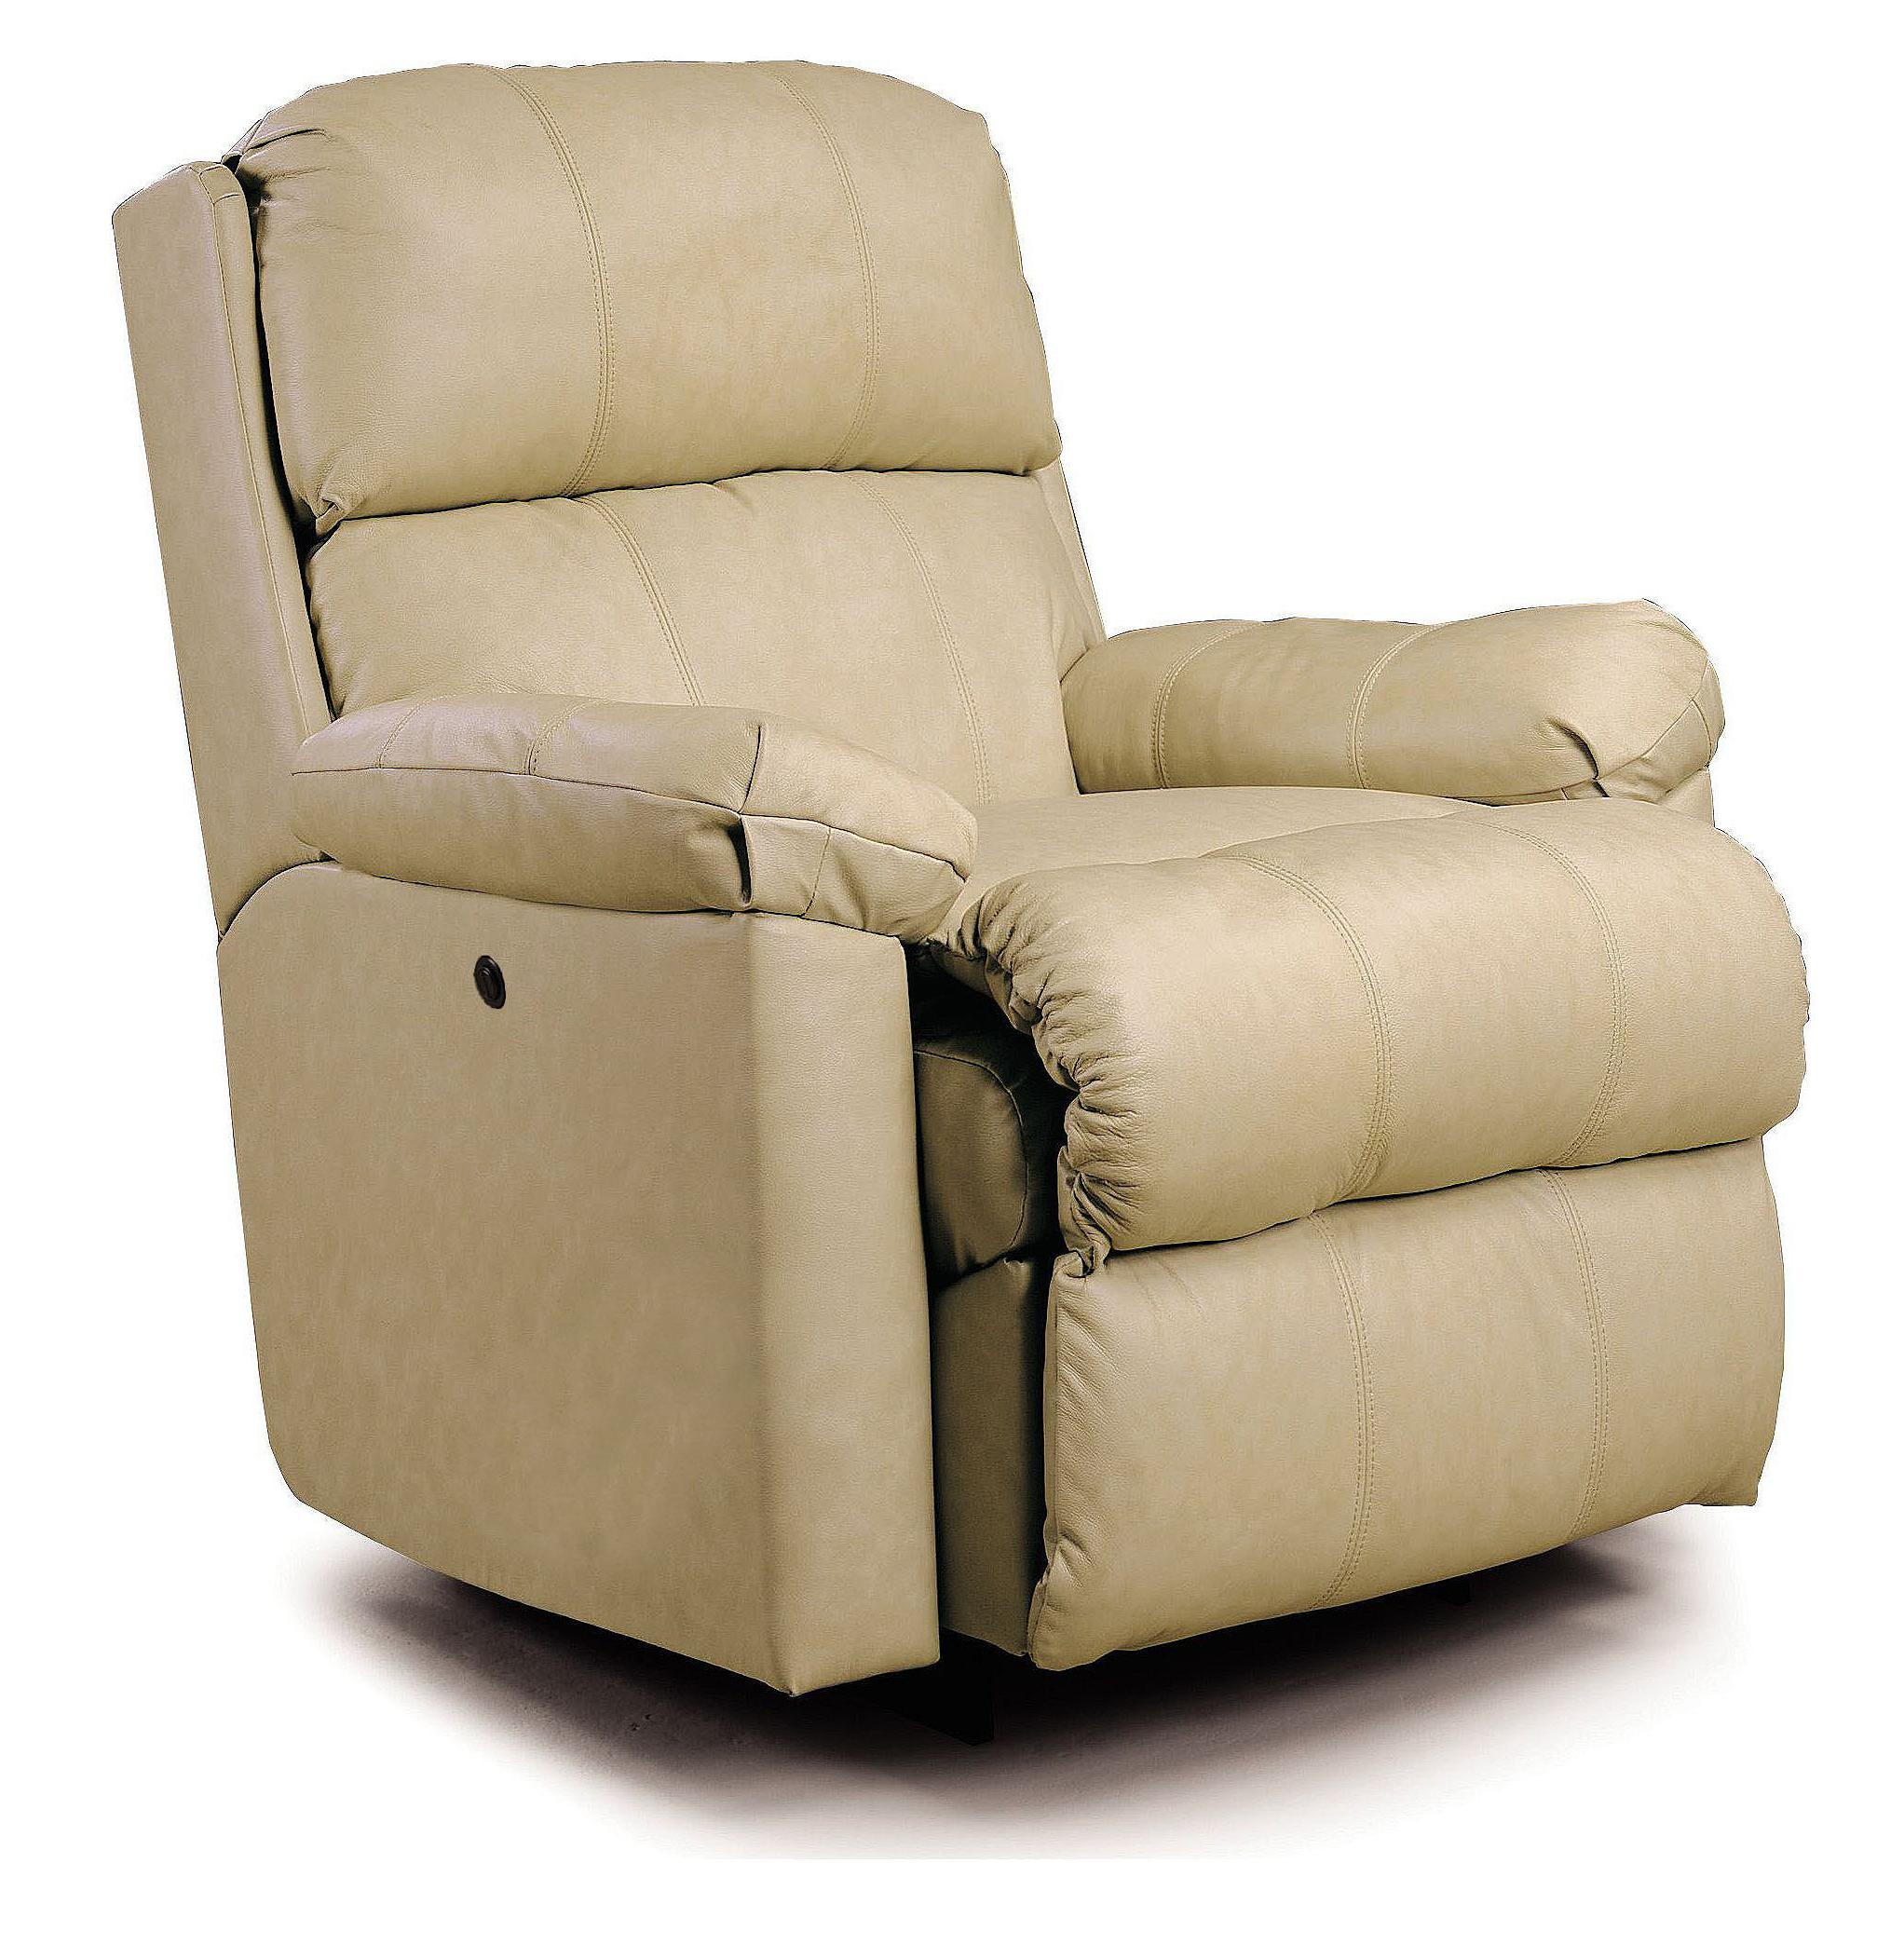 Lane timeless 1740 casual pad over chaise rocker recliner for Bulldog pad over chaise rocker recliner